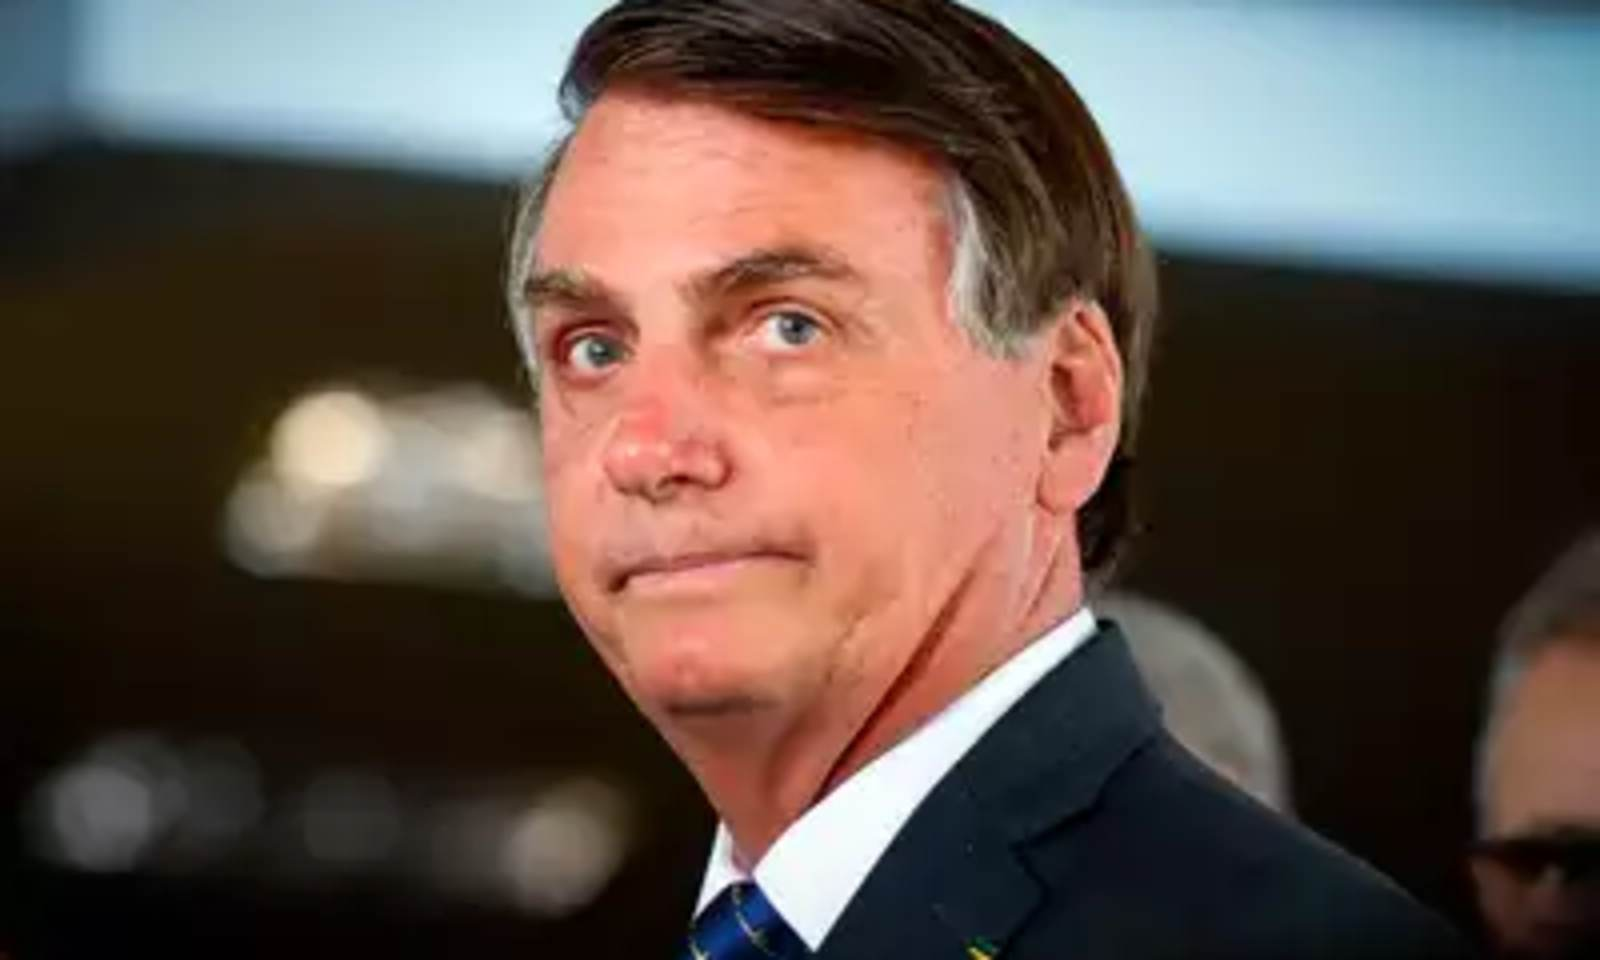 PM Modi to hold talks with Brazilian President Jair Messias Bolsonaro today